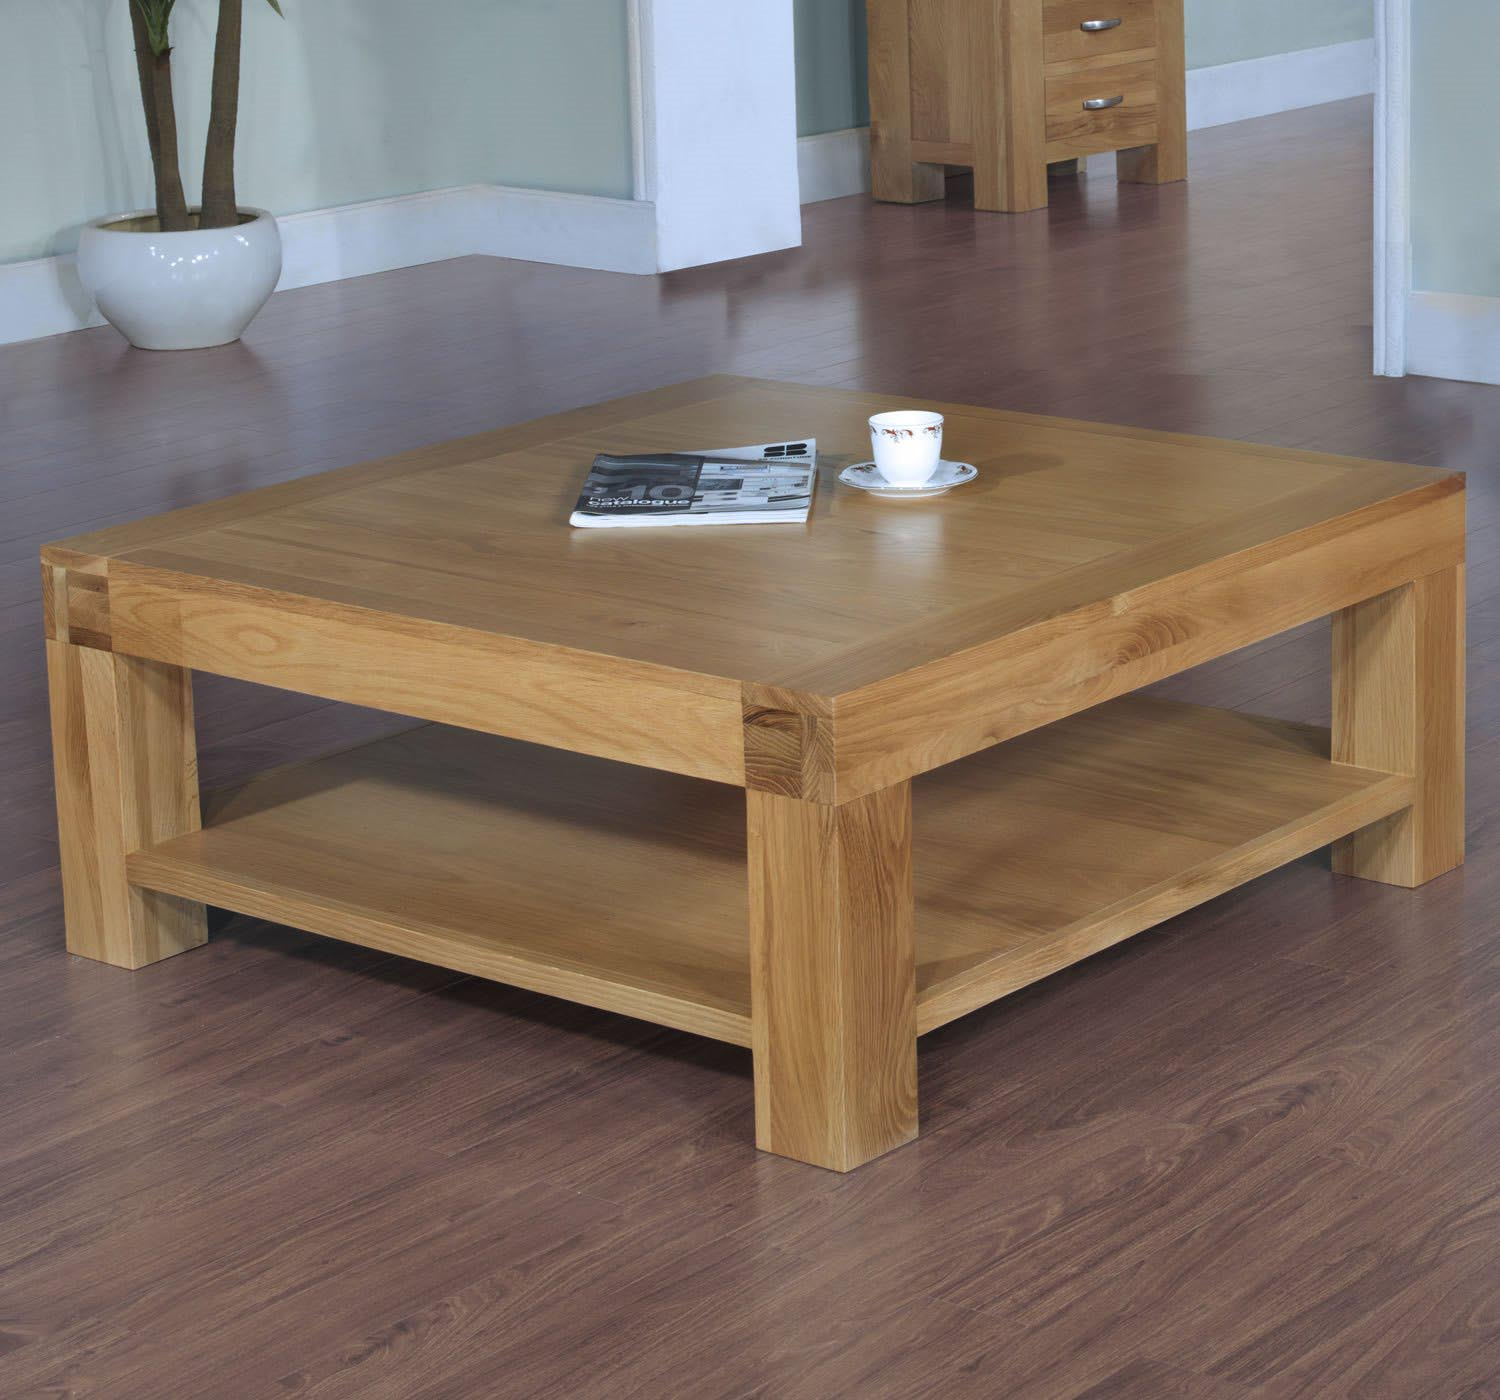 Pine square coffee table design ideas